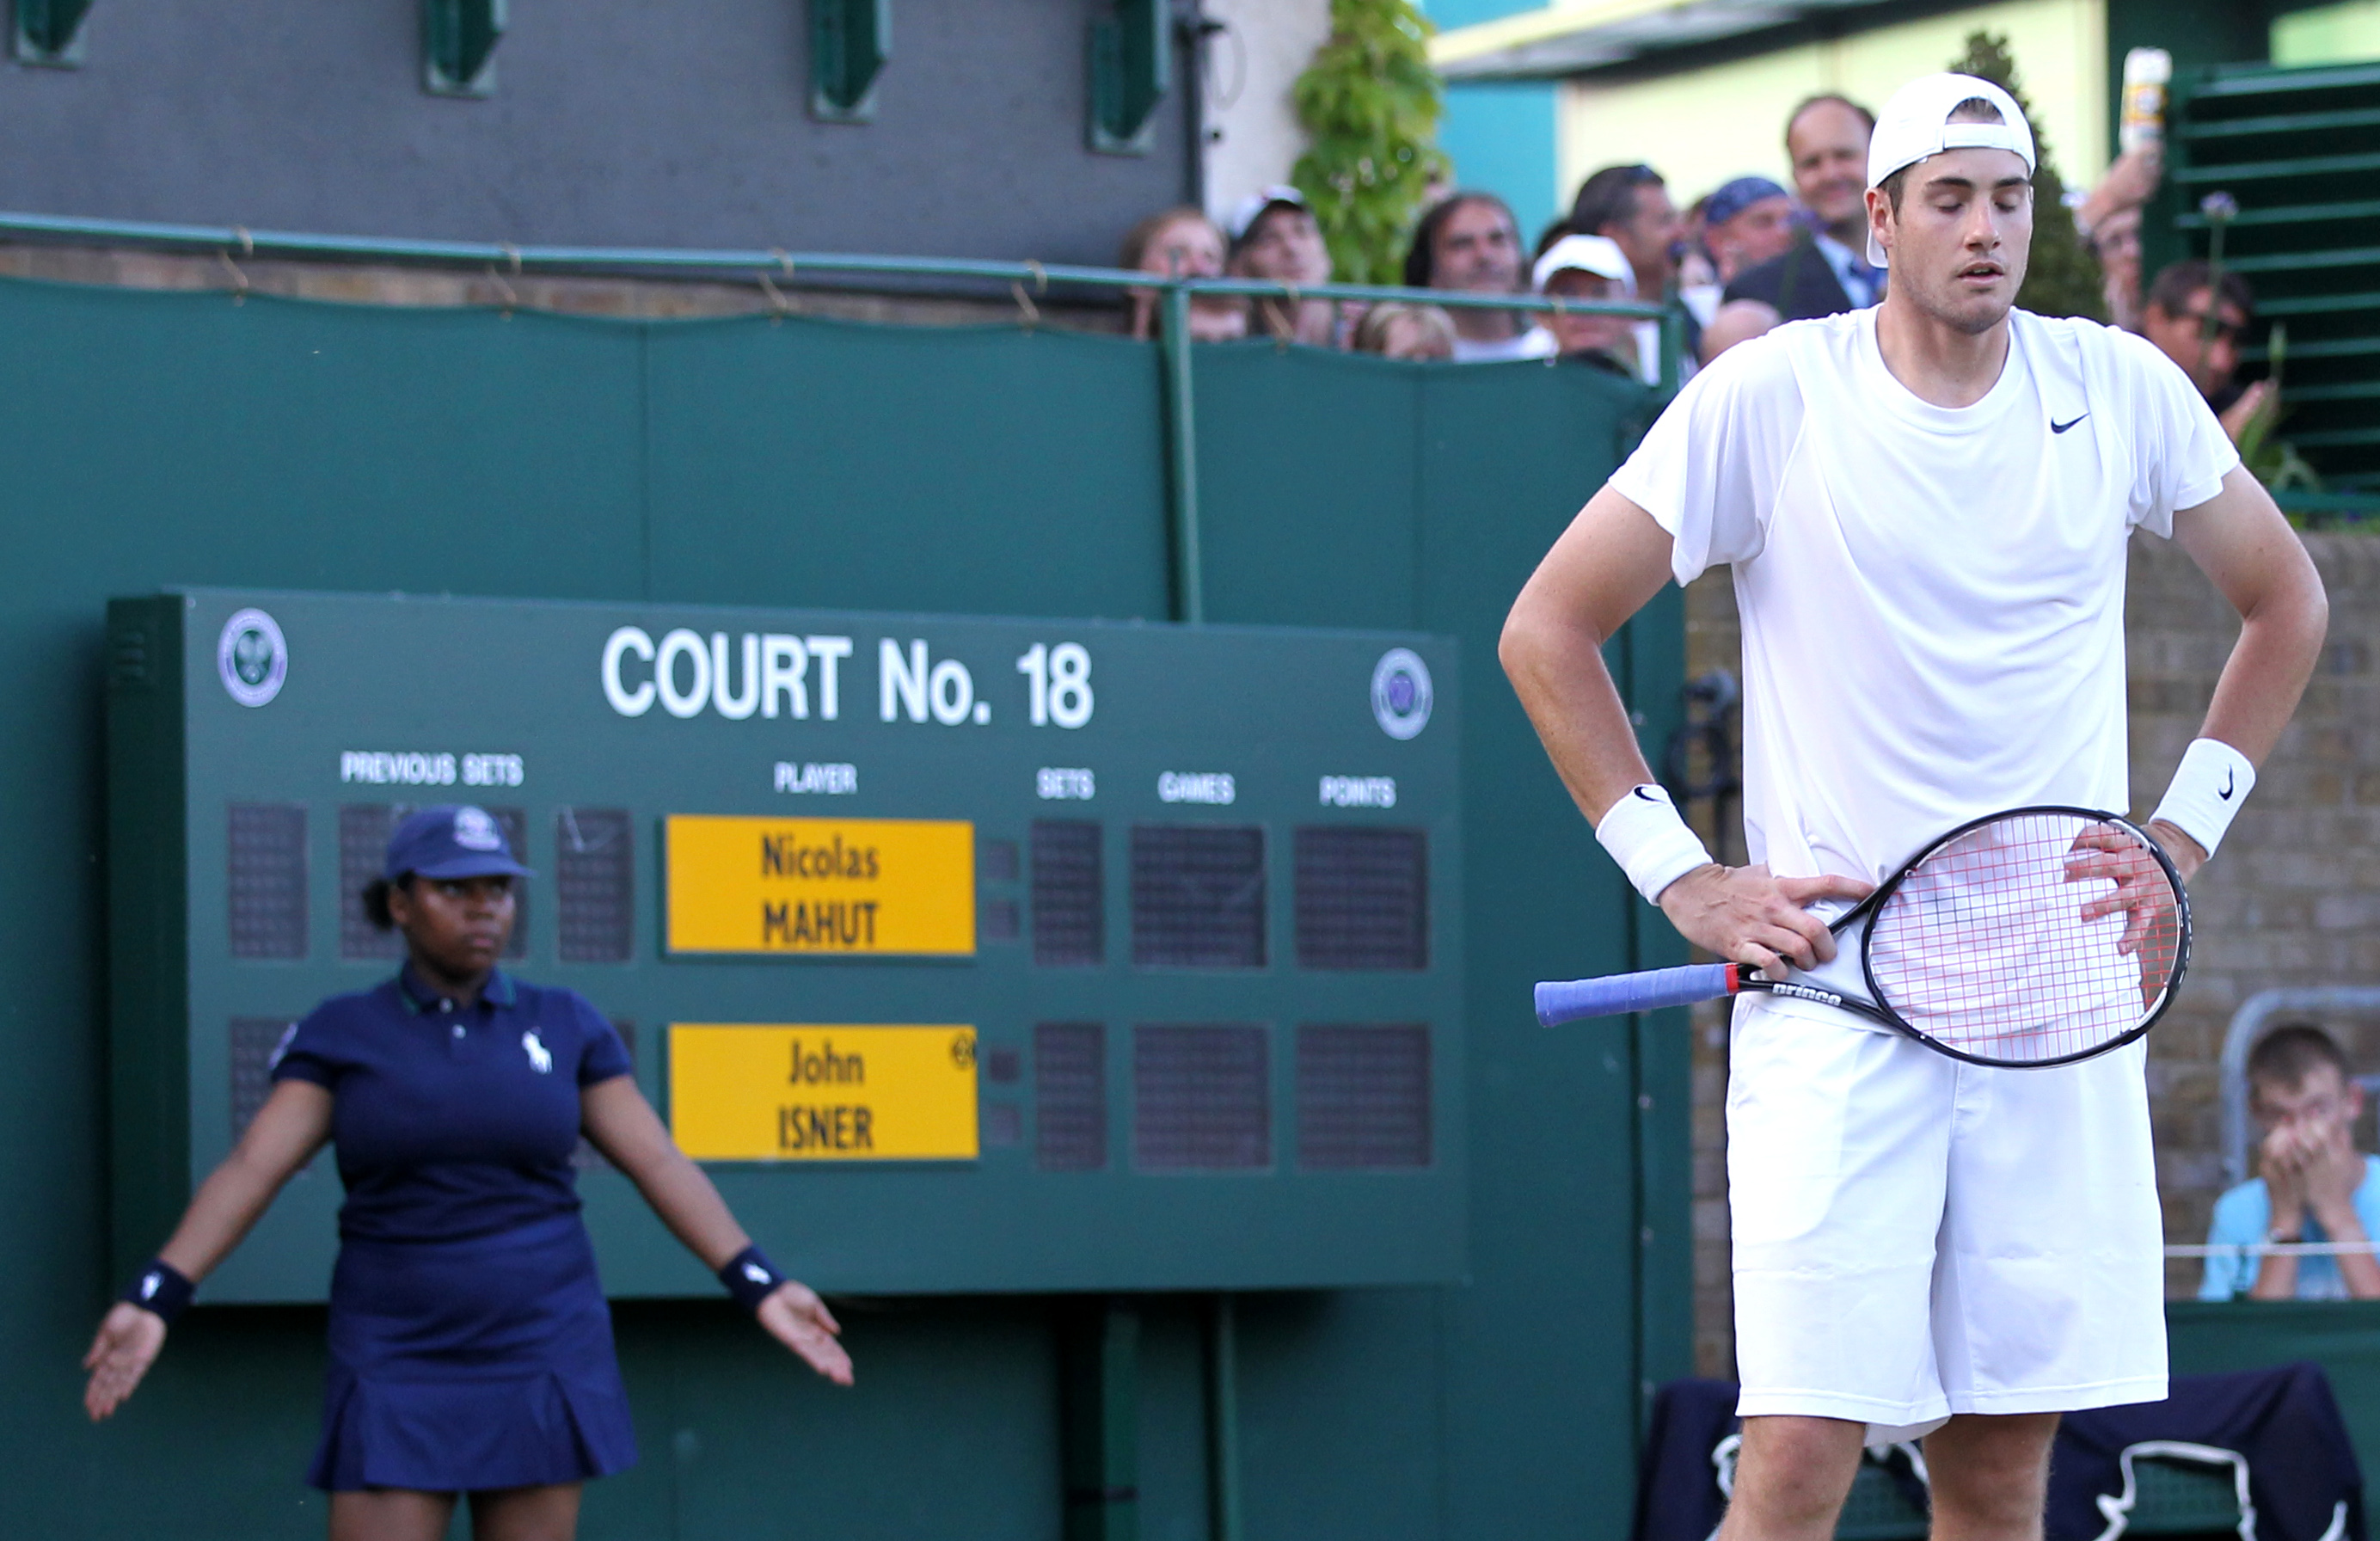 Images from Isner-Mahut